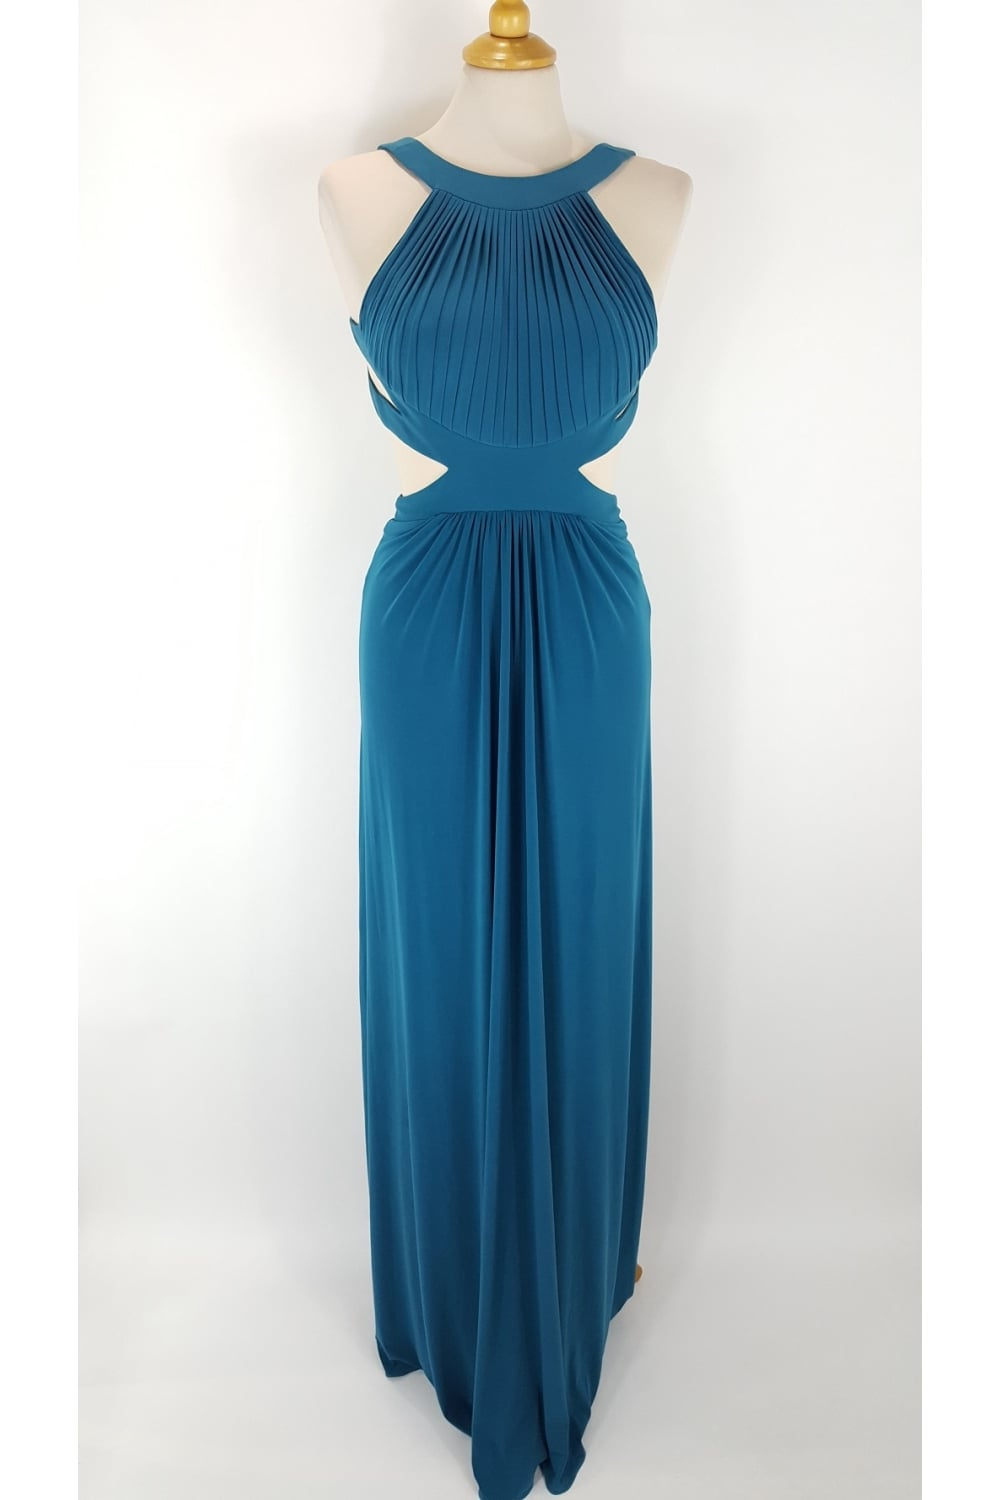 Tiffanys Illusion Prom Hillary OPen back cut away side dress in Teal